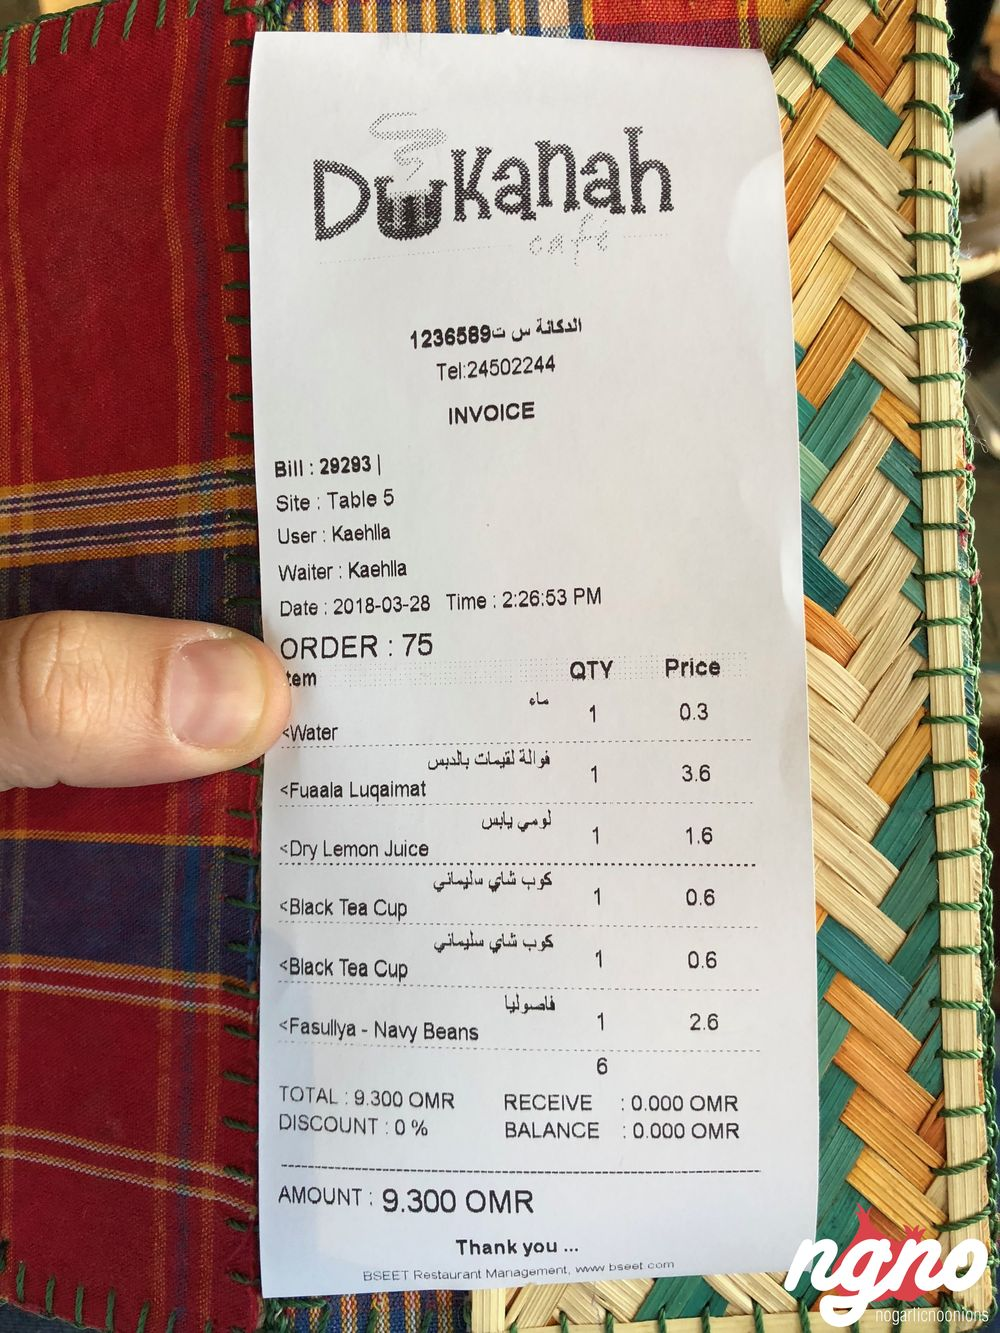 Dukanah: A Traditional Experience in Muscat